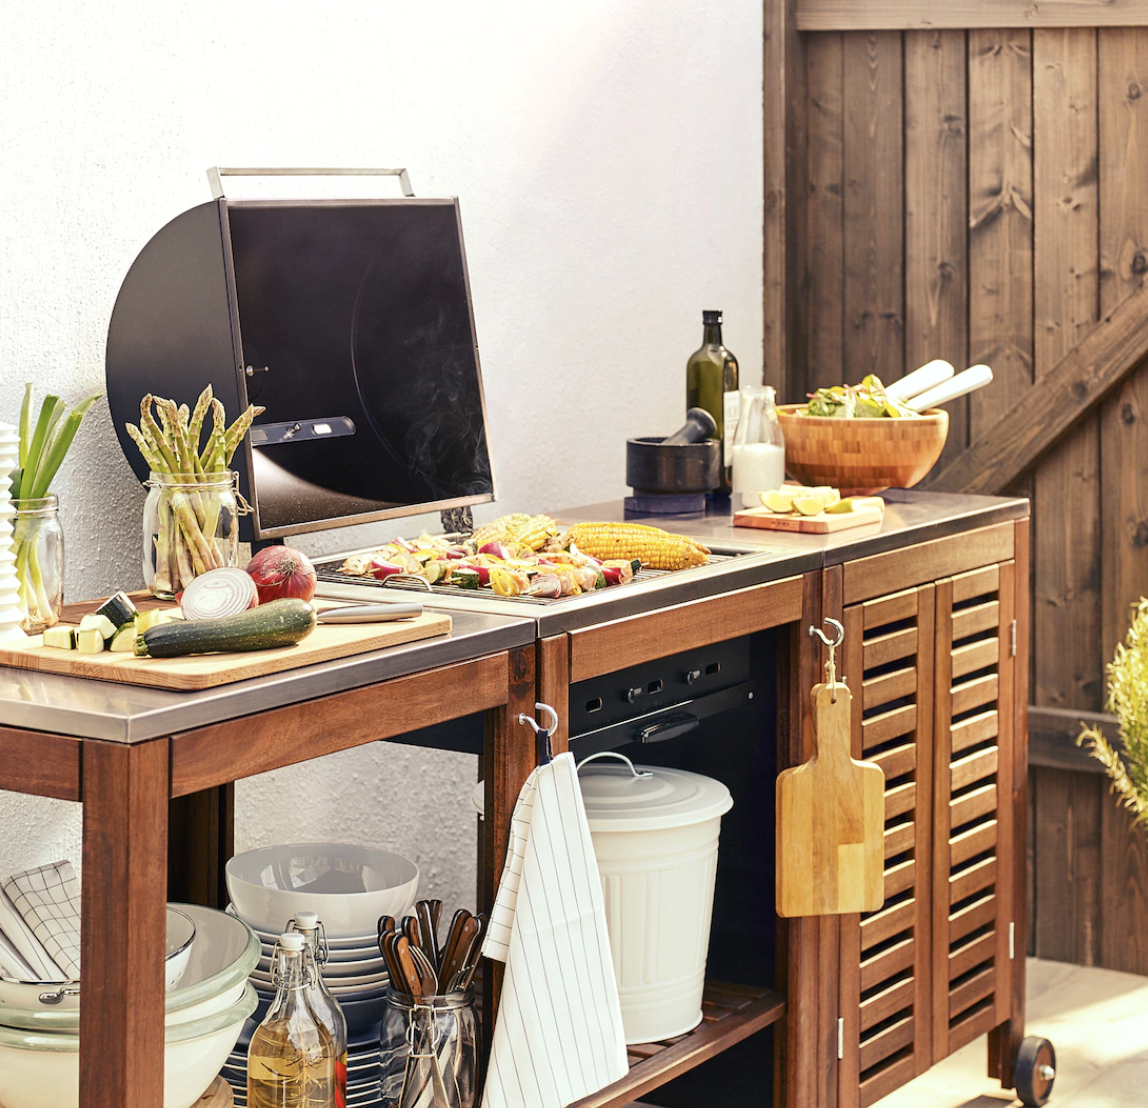 Ikea Outdoor Kitchen Island with a